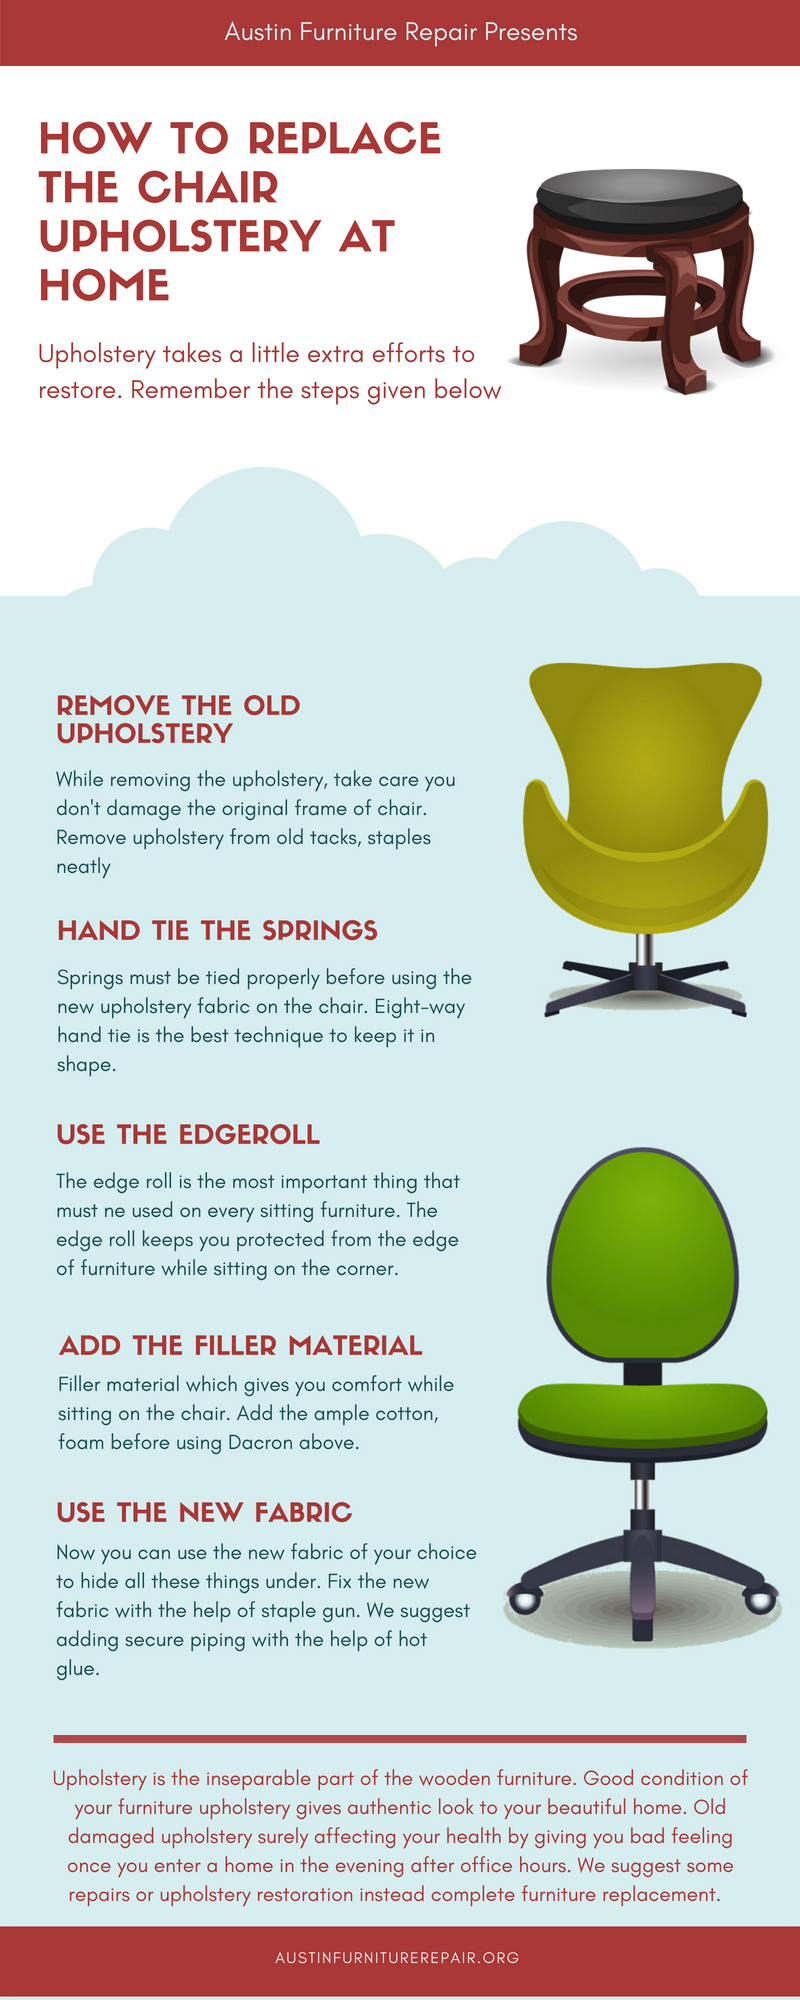 Upholstery is the inseparable part of the wooden furniture good